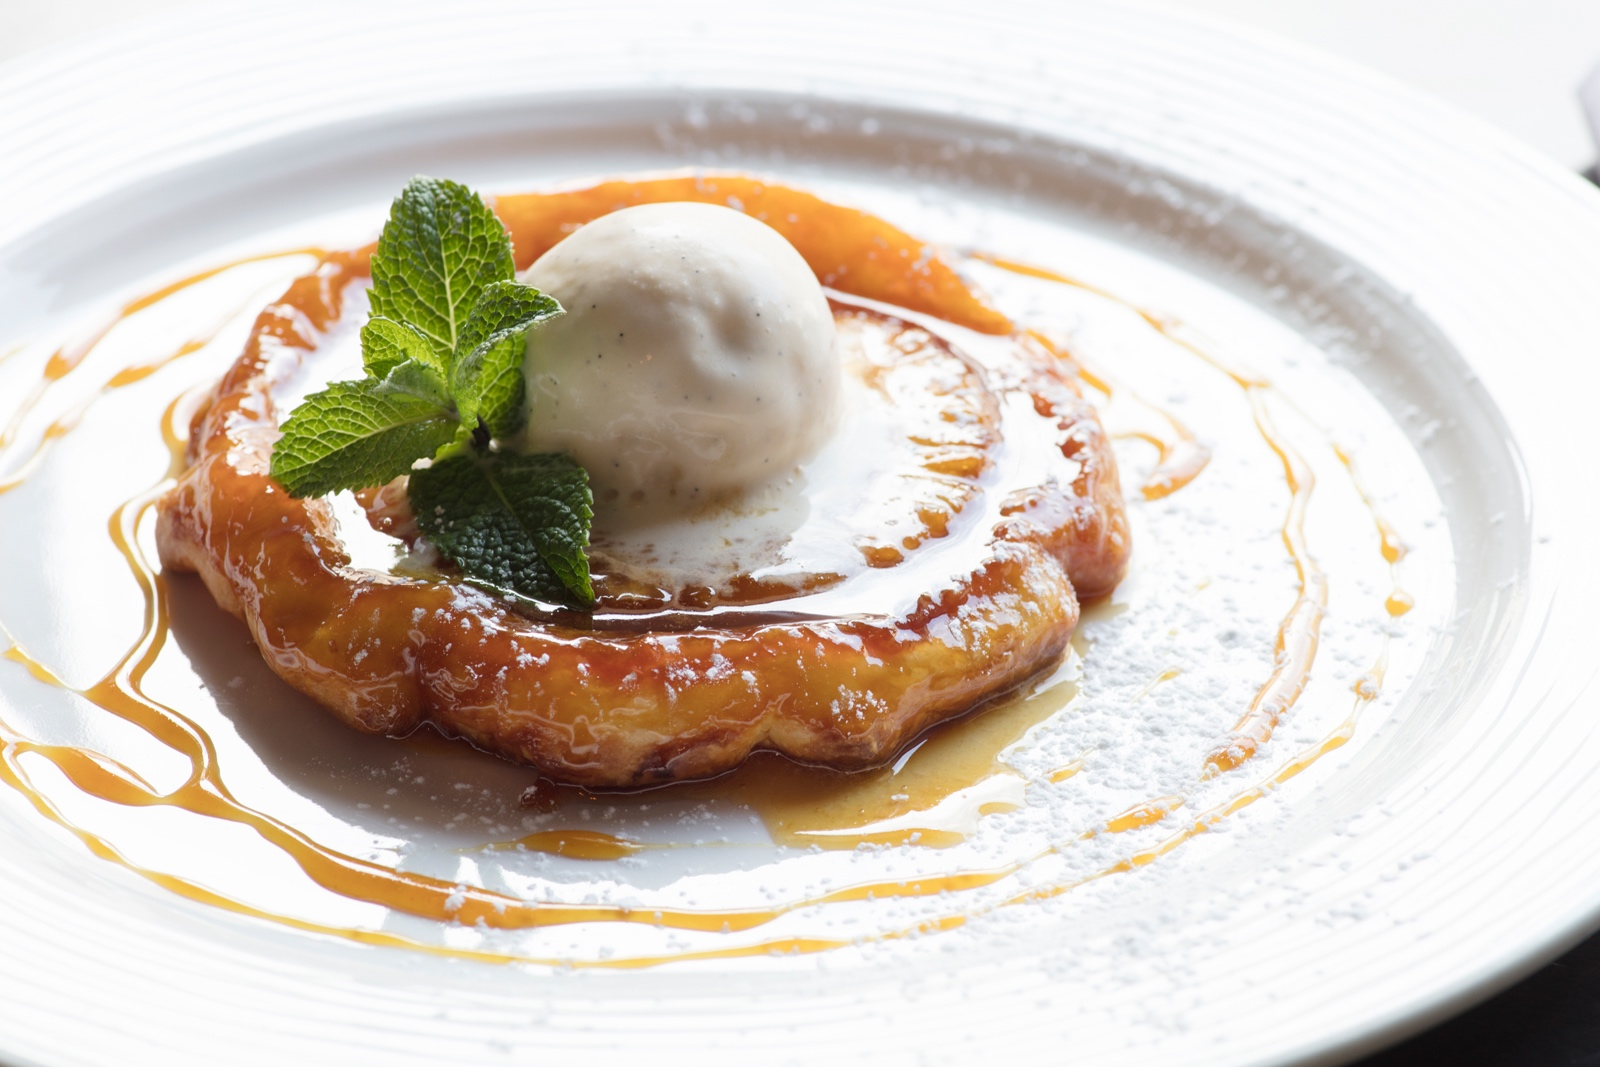 Pineapple Tarte Tatin with Home Made Coconut Ice Cream